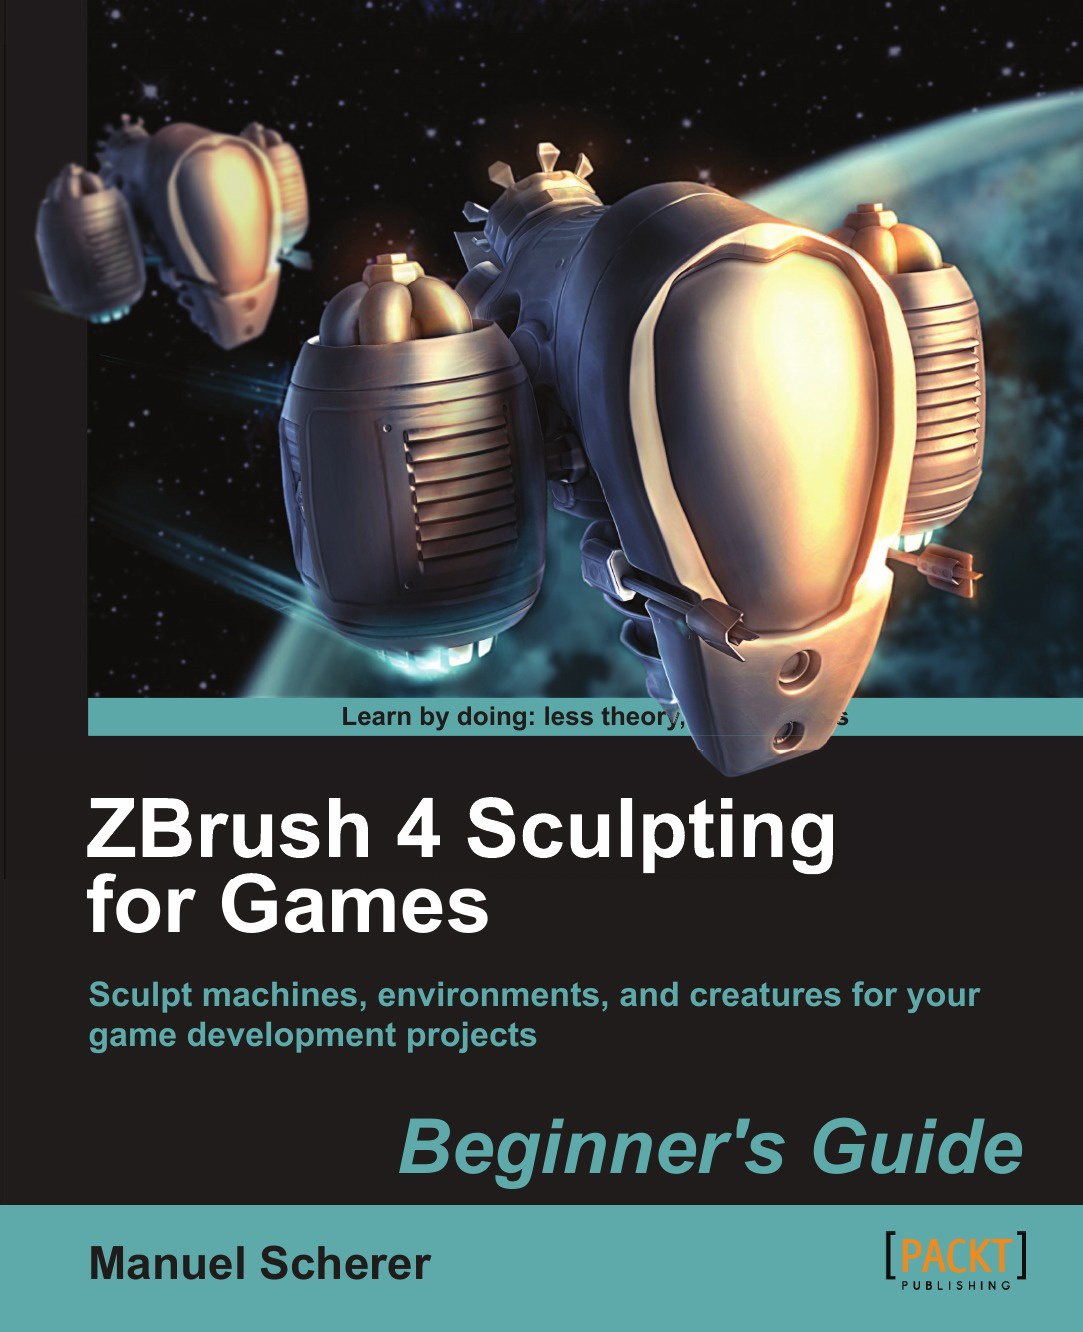 Manuel Scherer Zbrush 4 Sculpting for Games. Beginner's Guide эрик келлер введение в zbrush 4